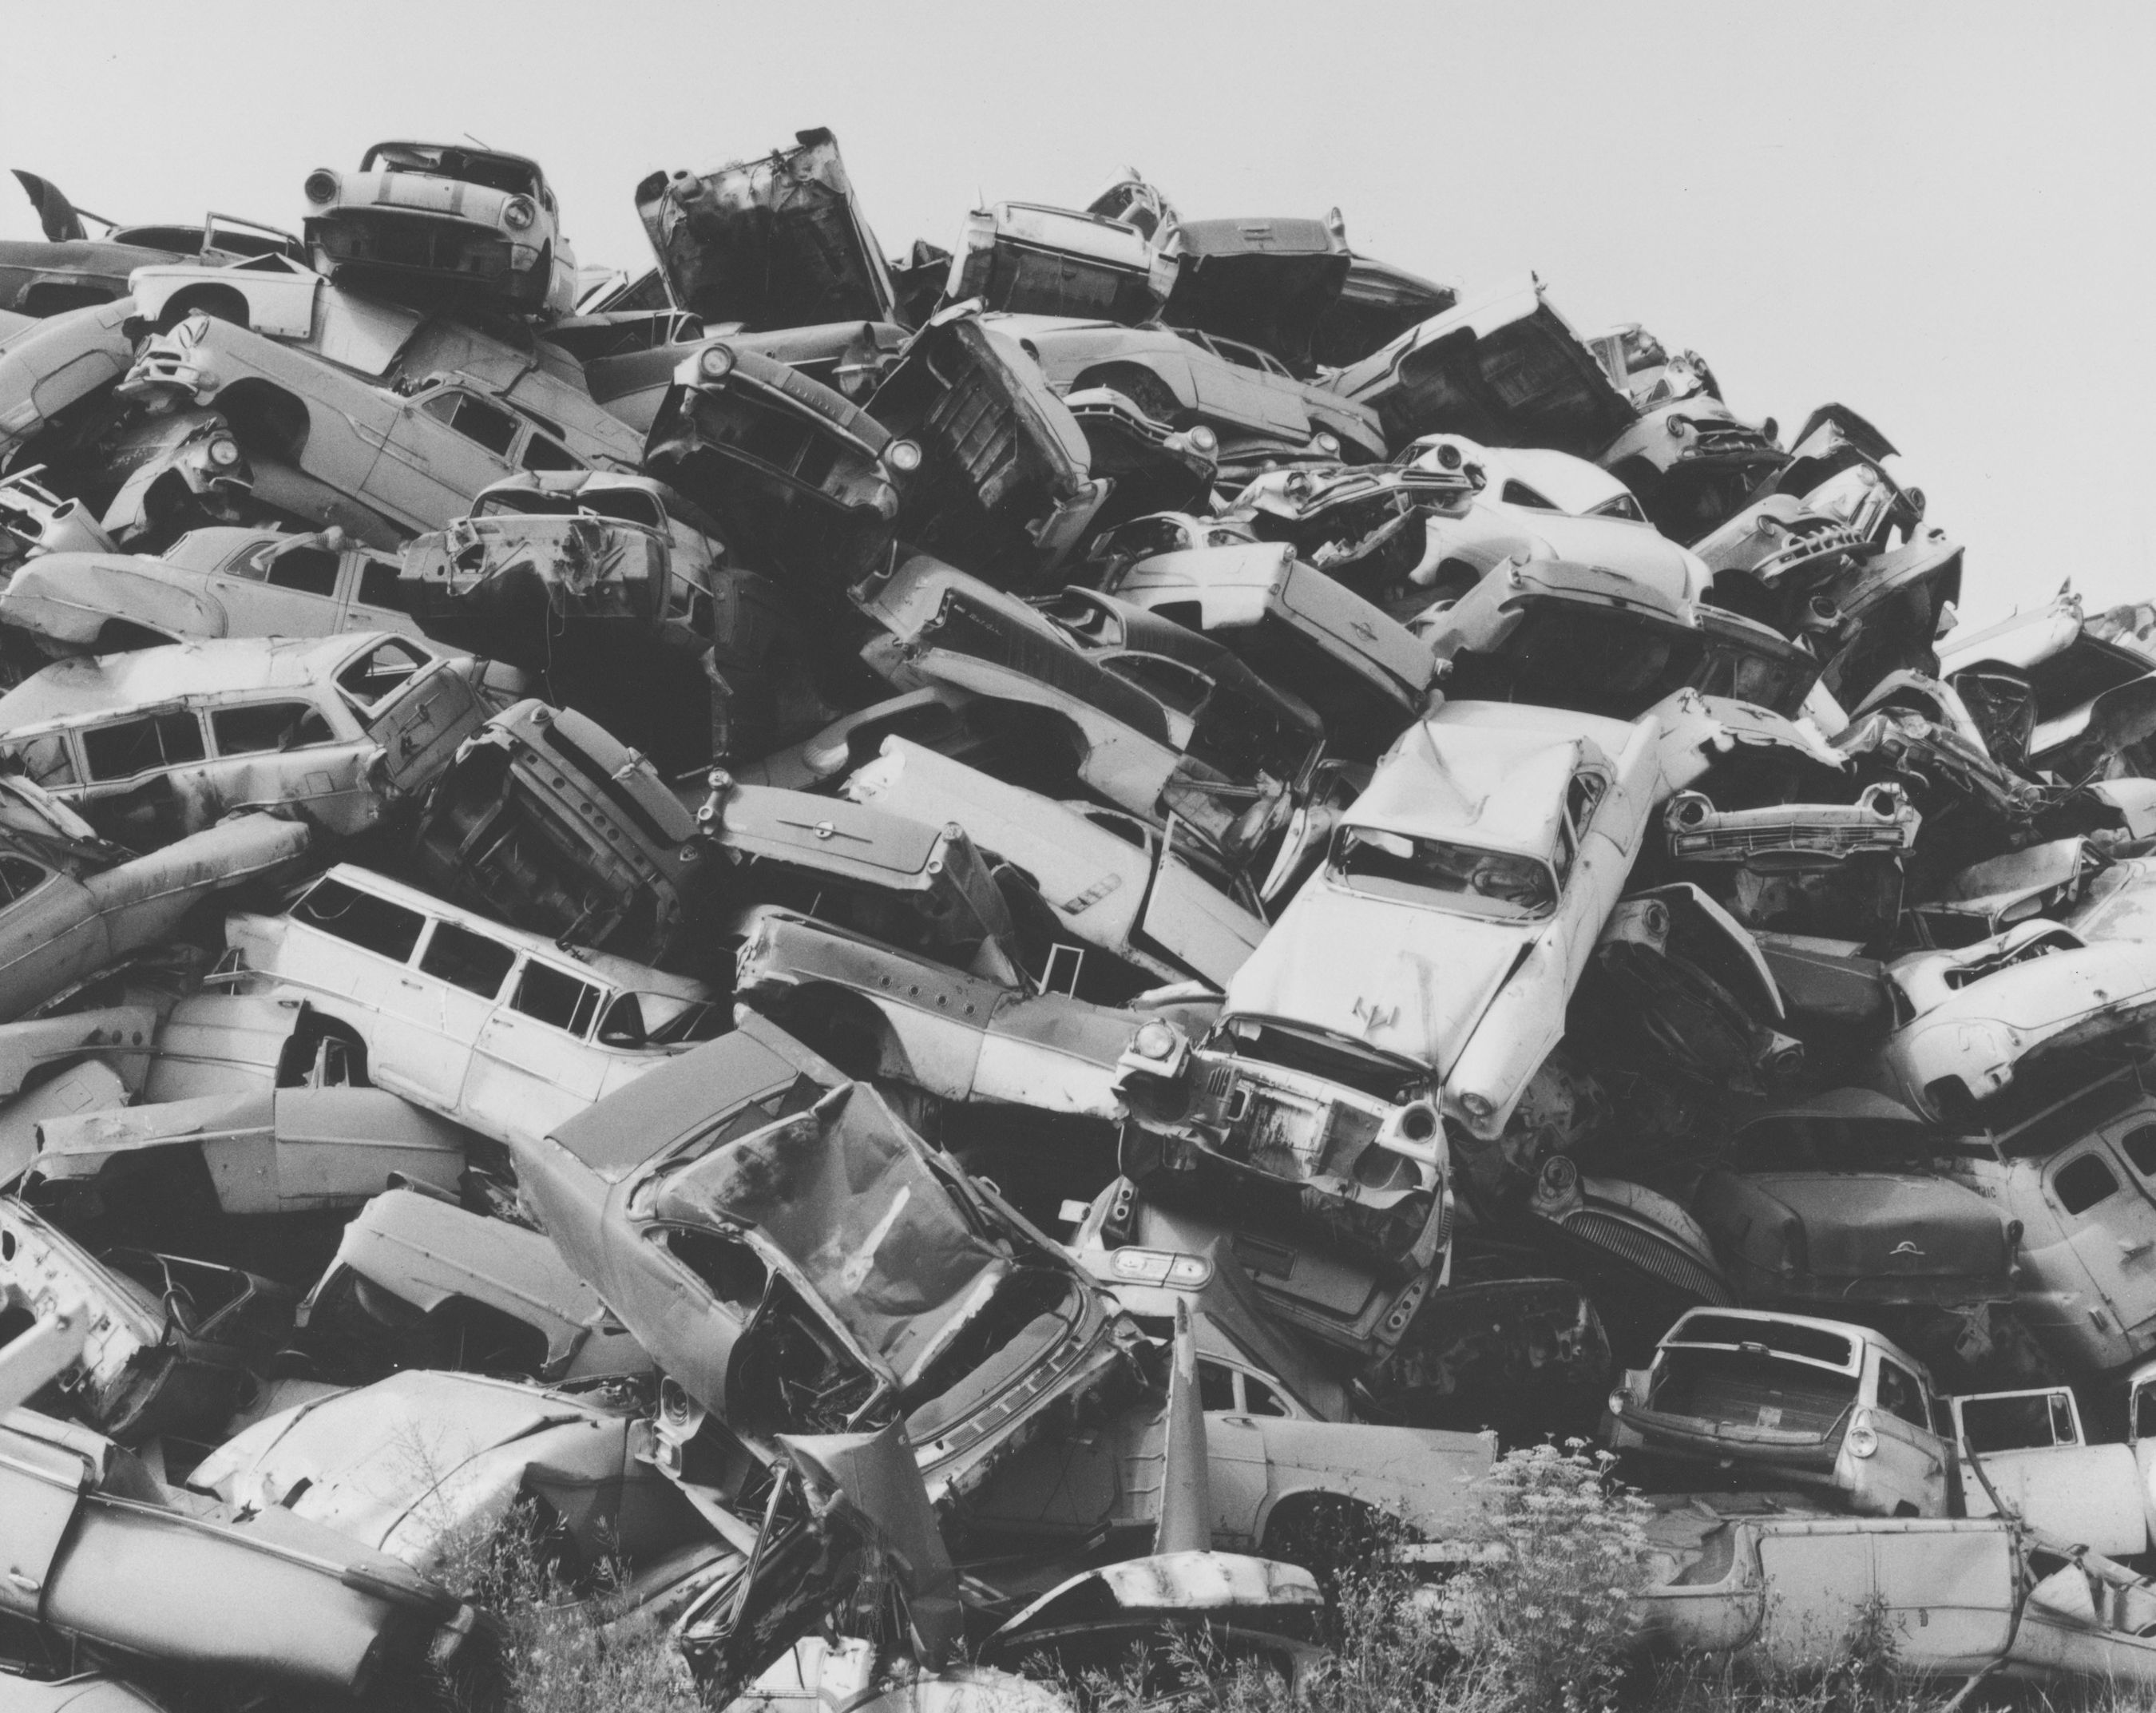 Oakland, California, 1959   Abandoned cars, Barn finds and Cars